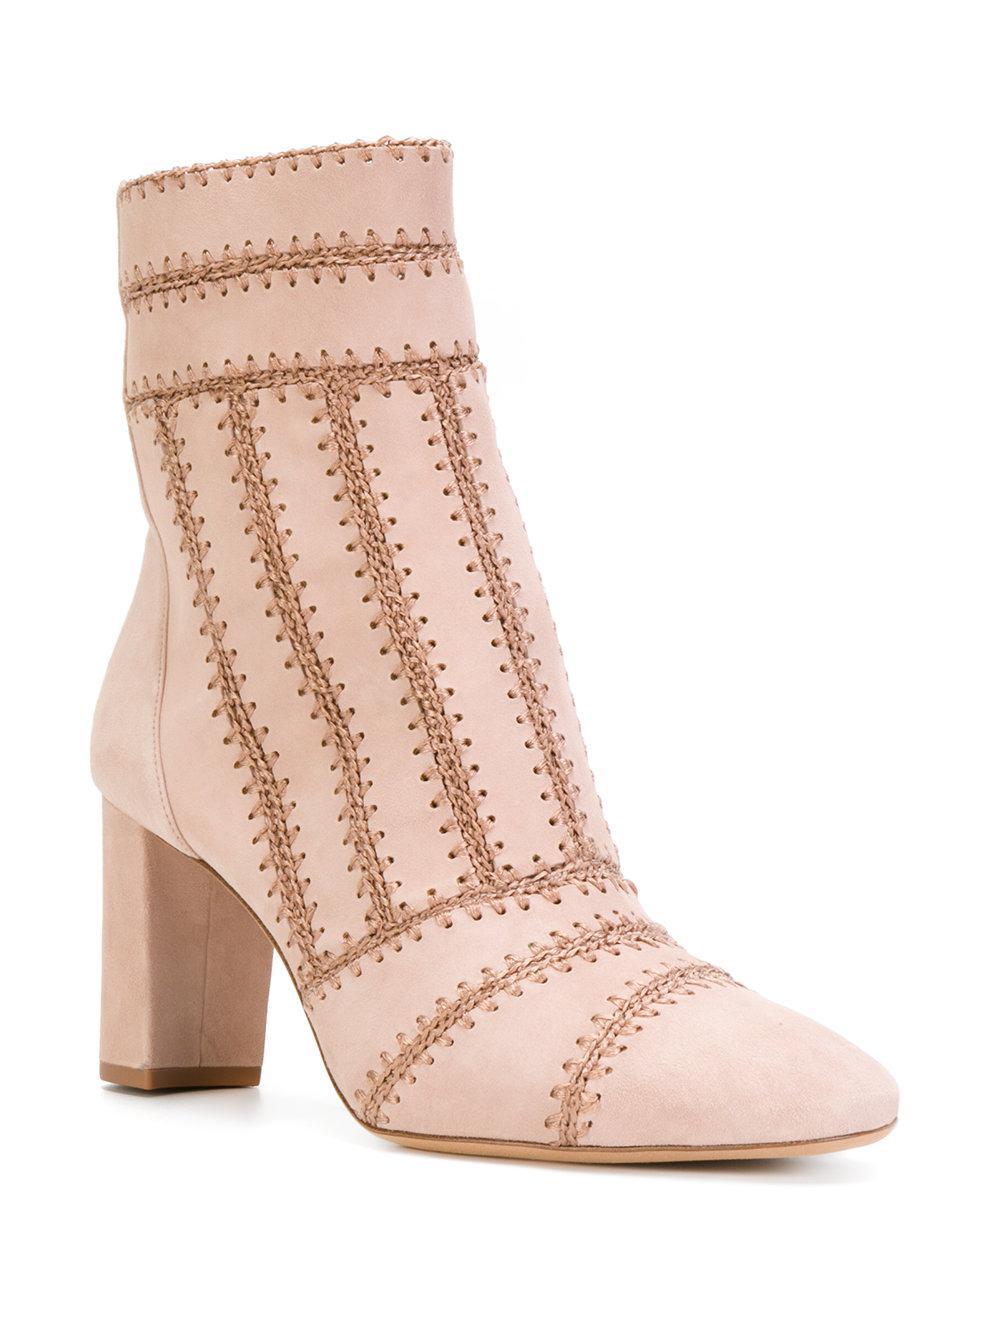 Alexandre Birman Suede Stitch Panelled Ankle Boots in Pink & Purple (Pink)